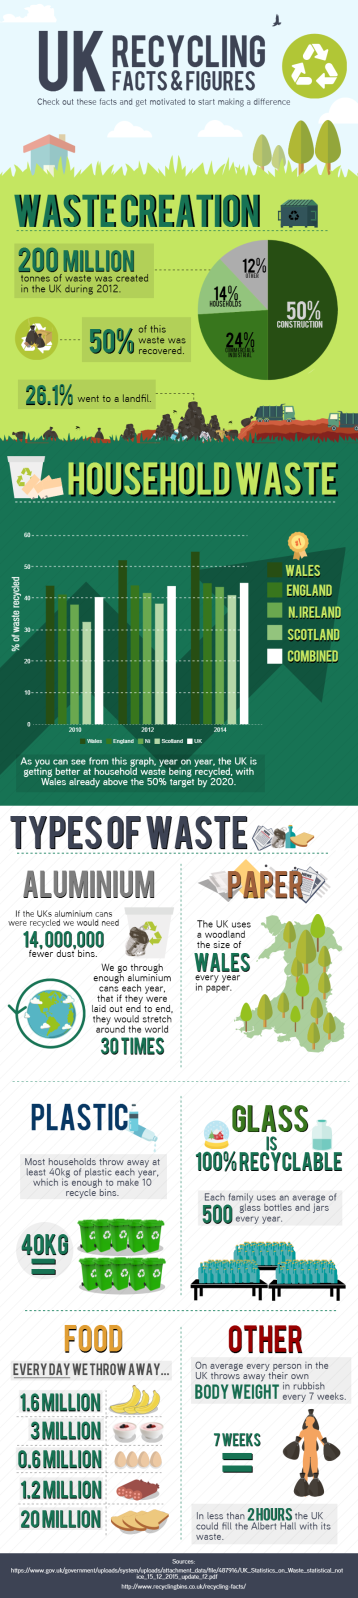 UK Recycling Facts & Figures